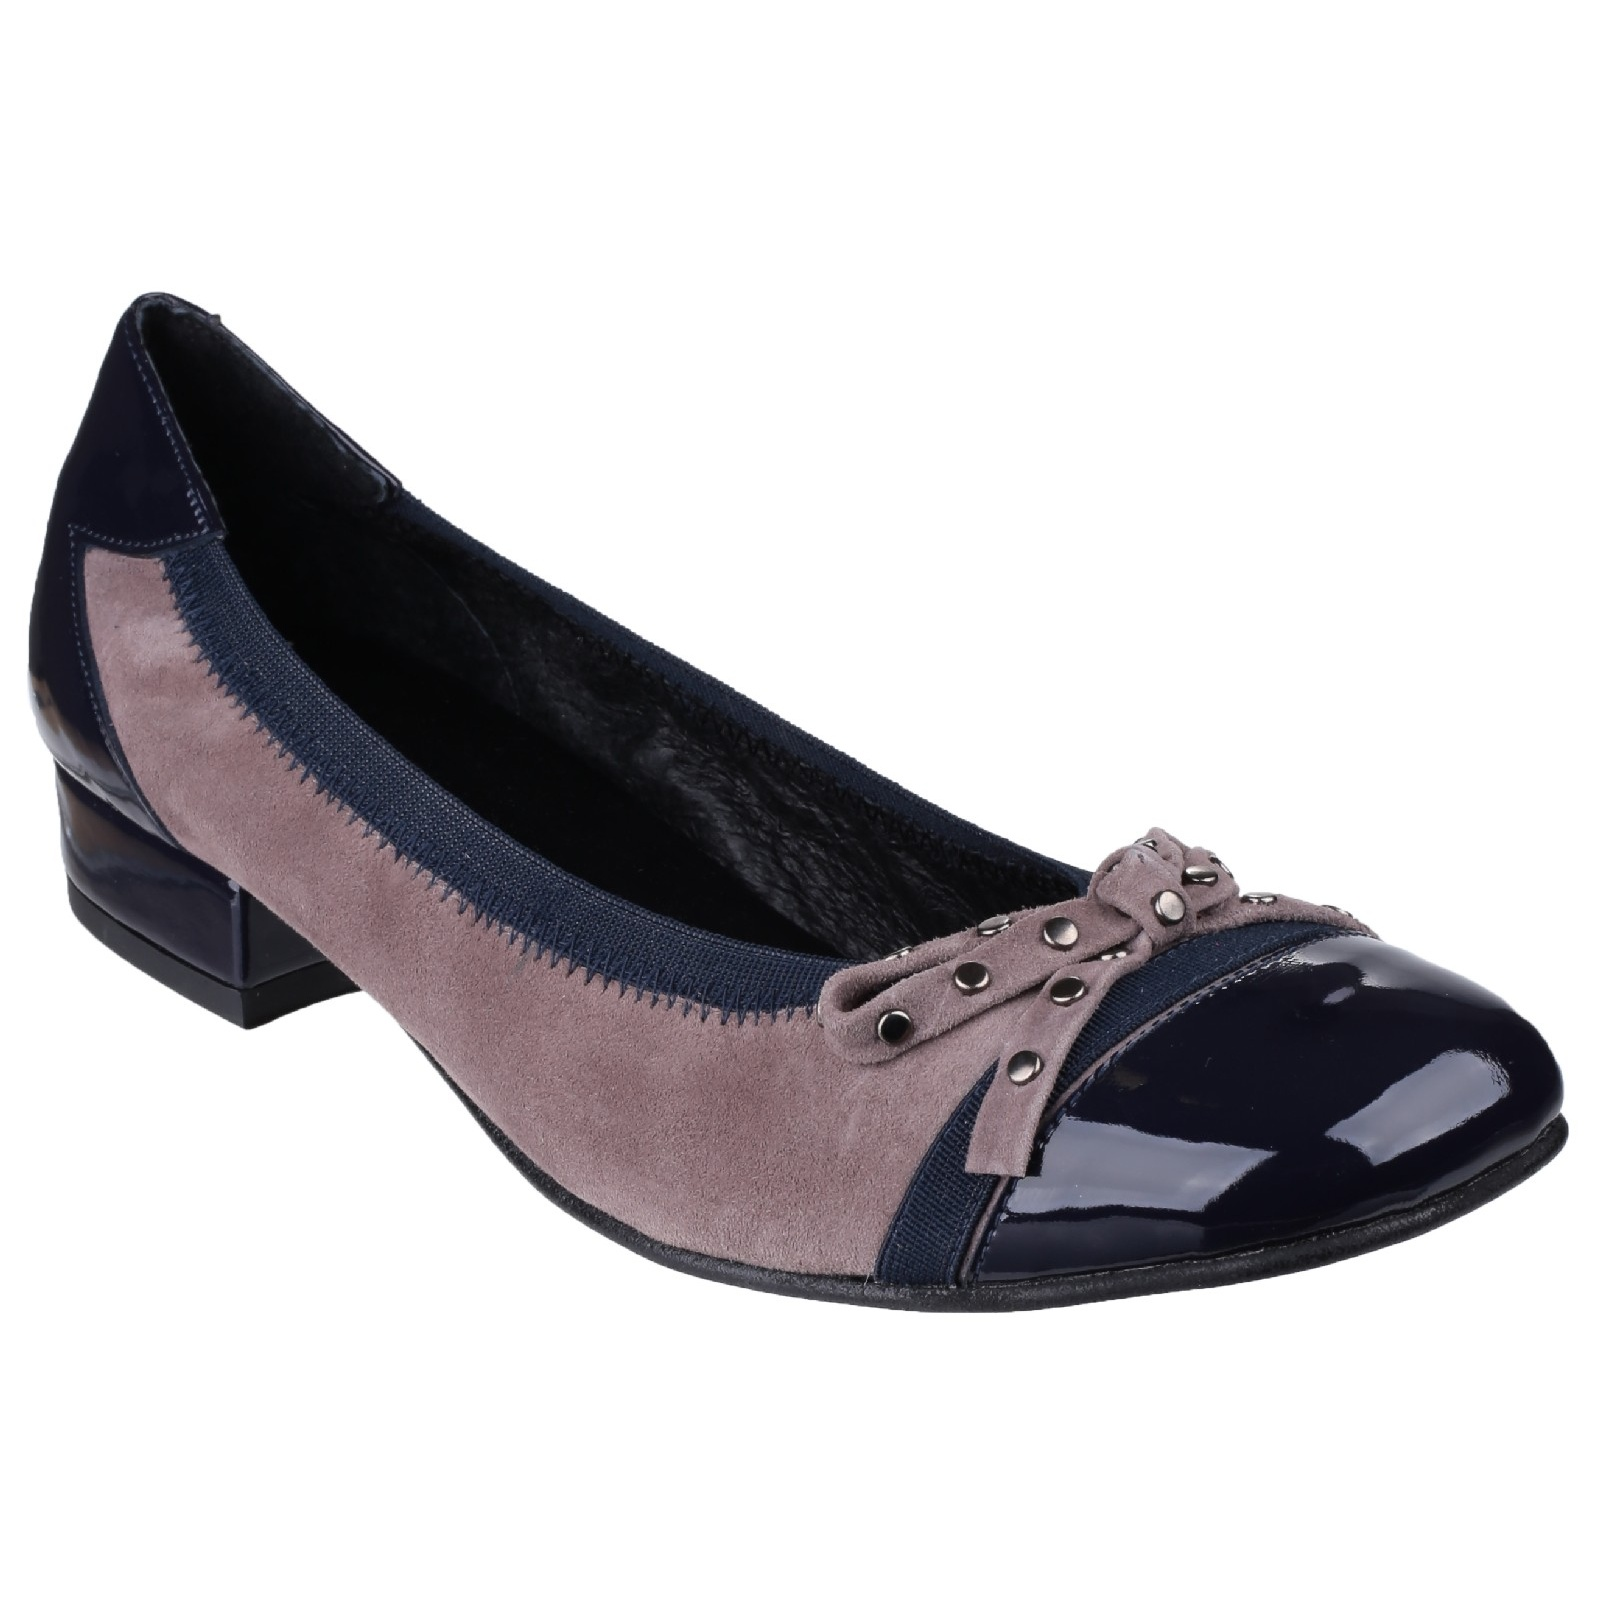 Ladies Wedge Ballerina Shoes